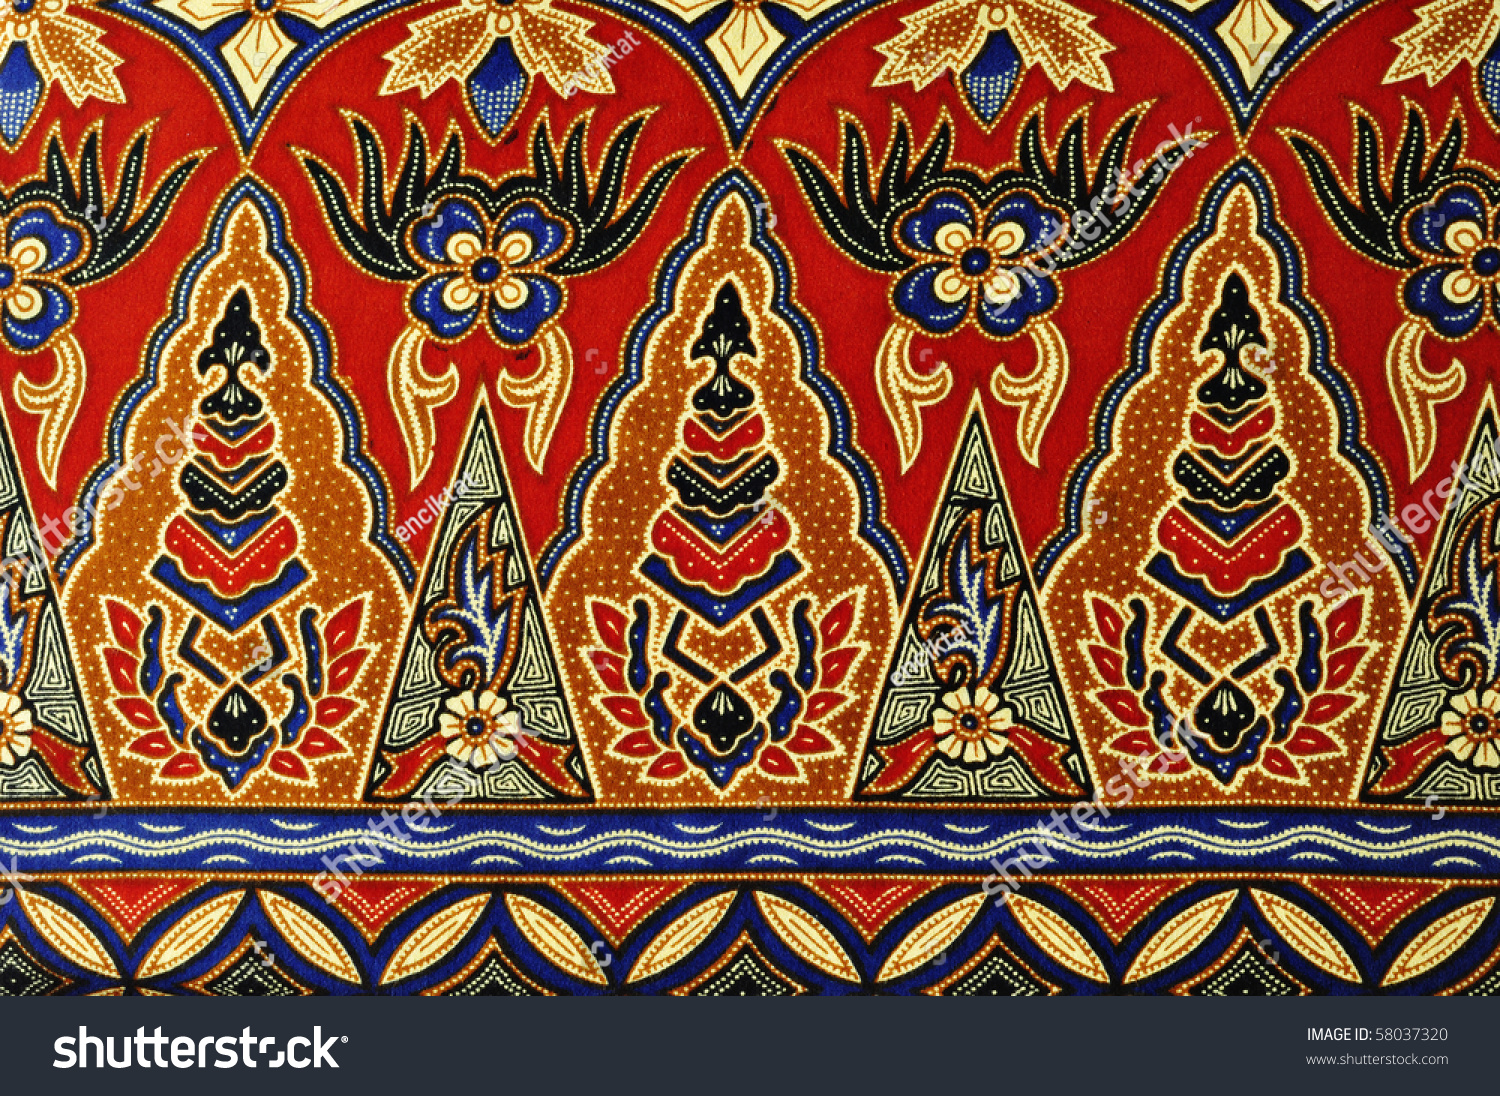 Background batik pattern stock photography image 803022 - Pattern Of Red Batik Background Stock Photo 58037320 Shutterstock 1500x1096